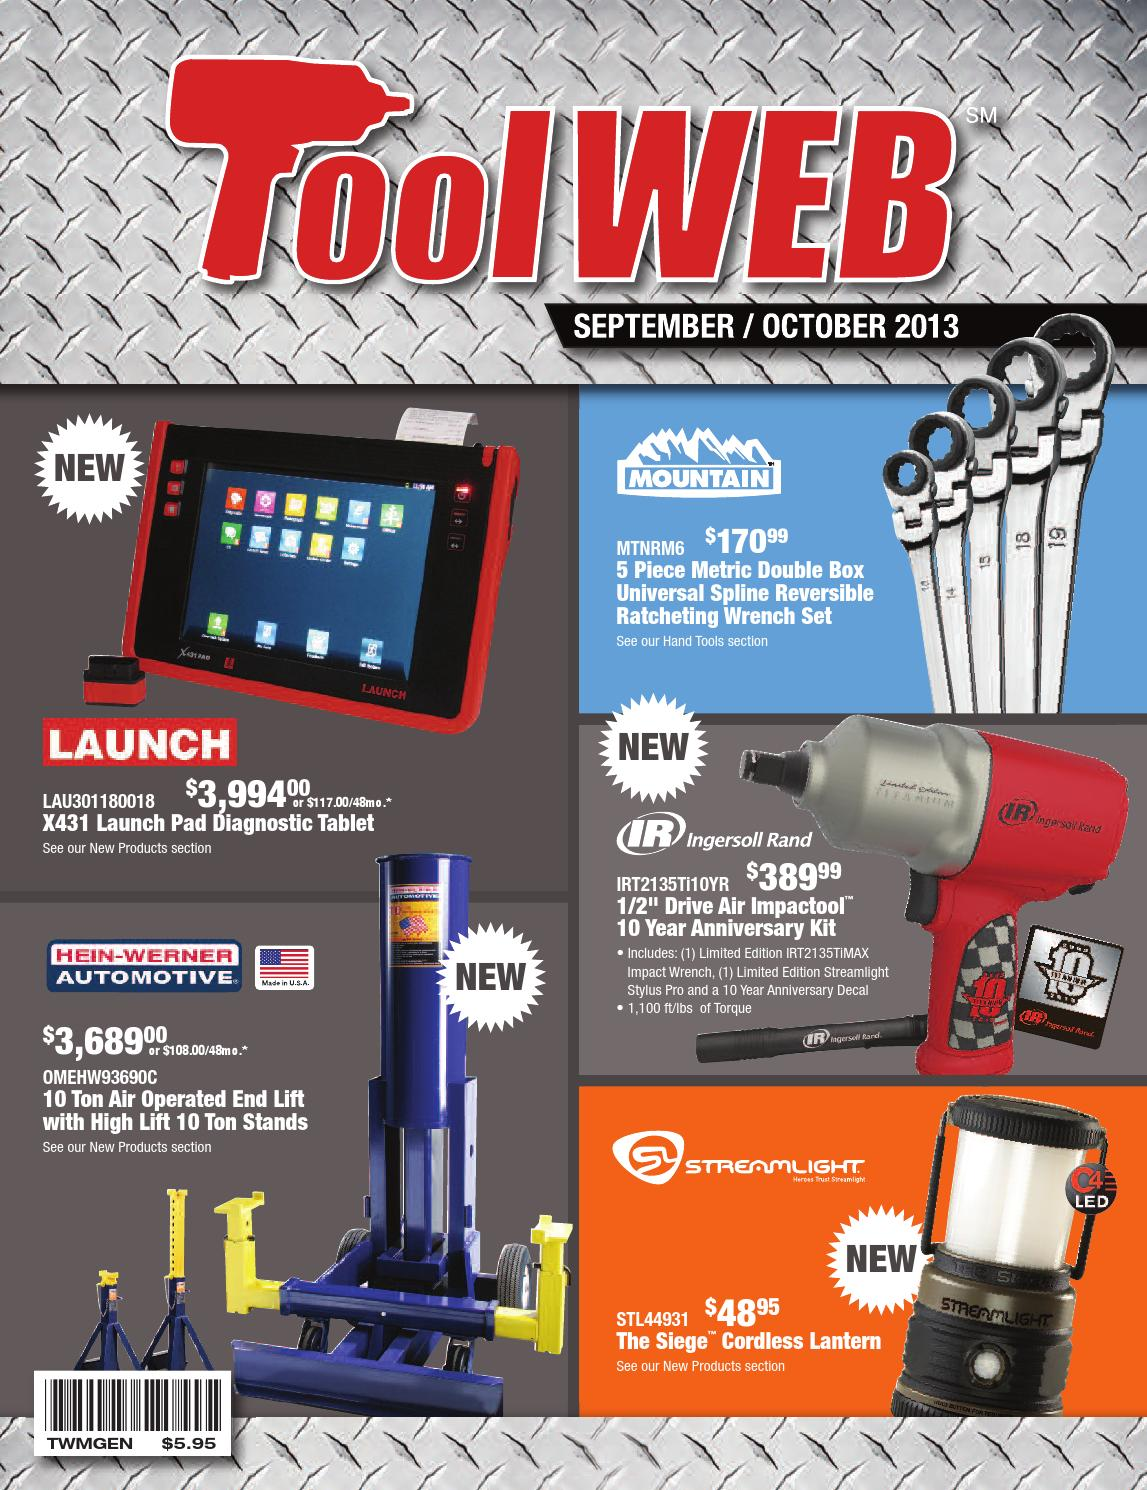 Remco supplies 877 897 9776 automotive toolweb sept oct 2013 catalog by remco supplies issuu